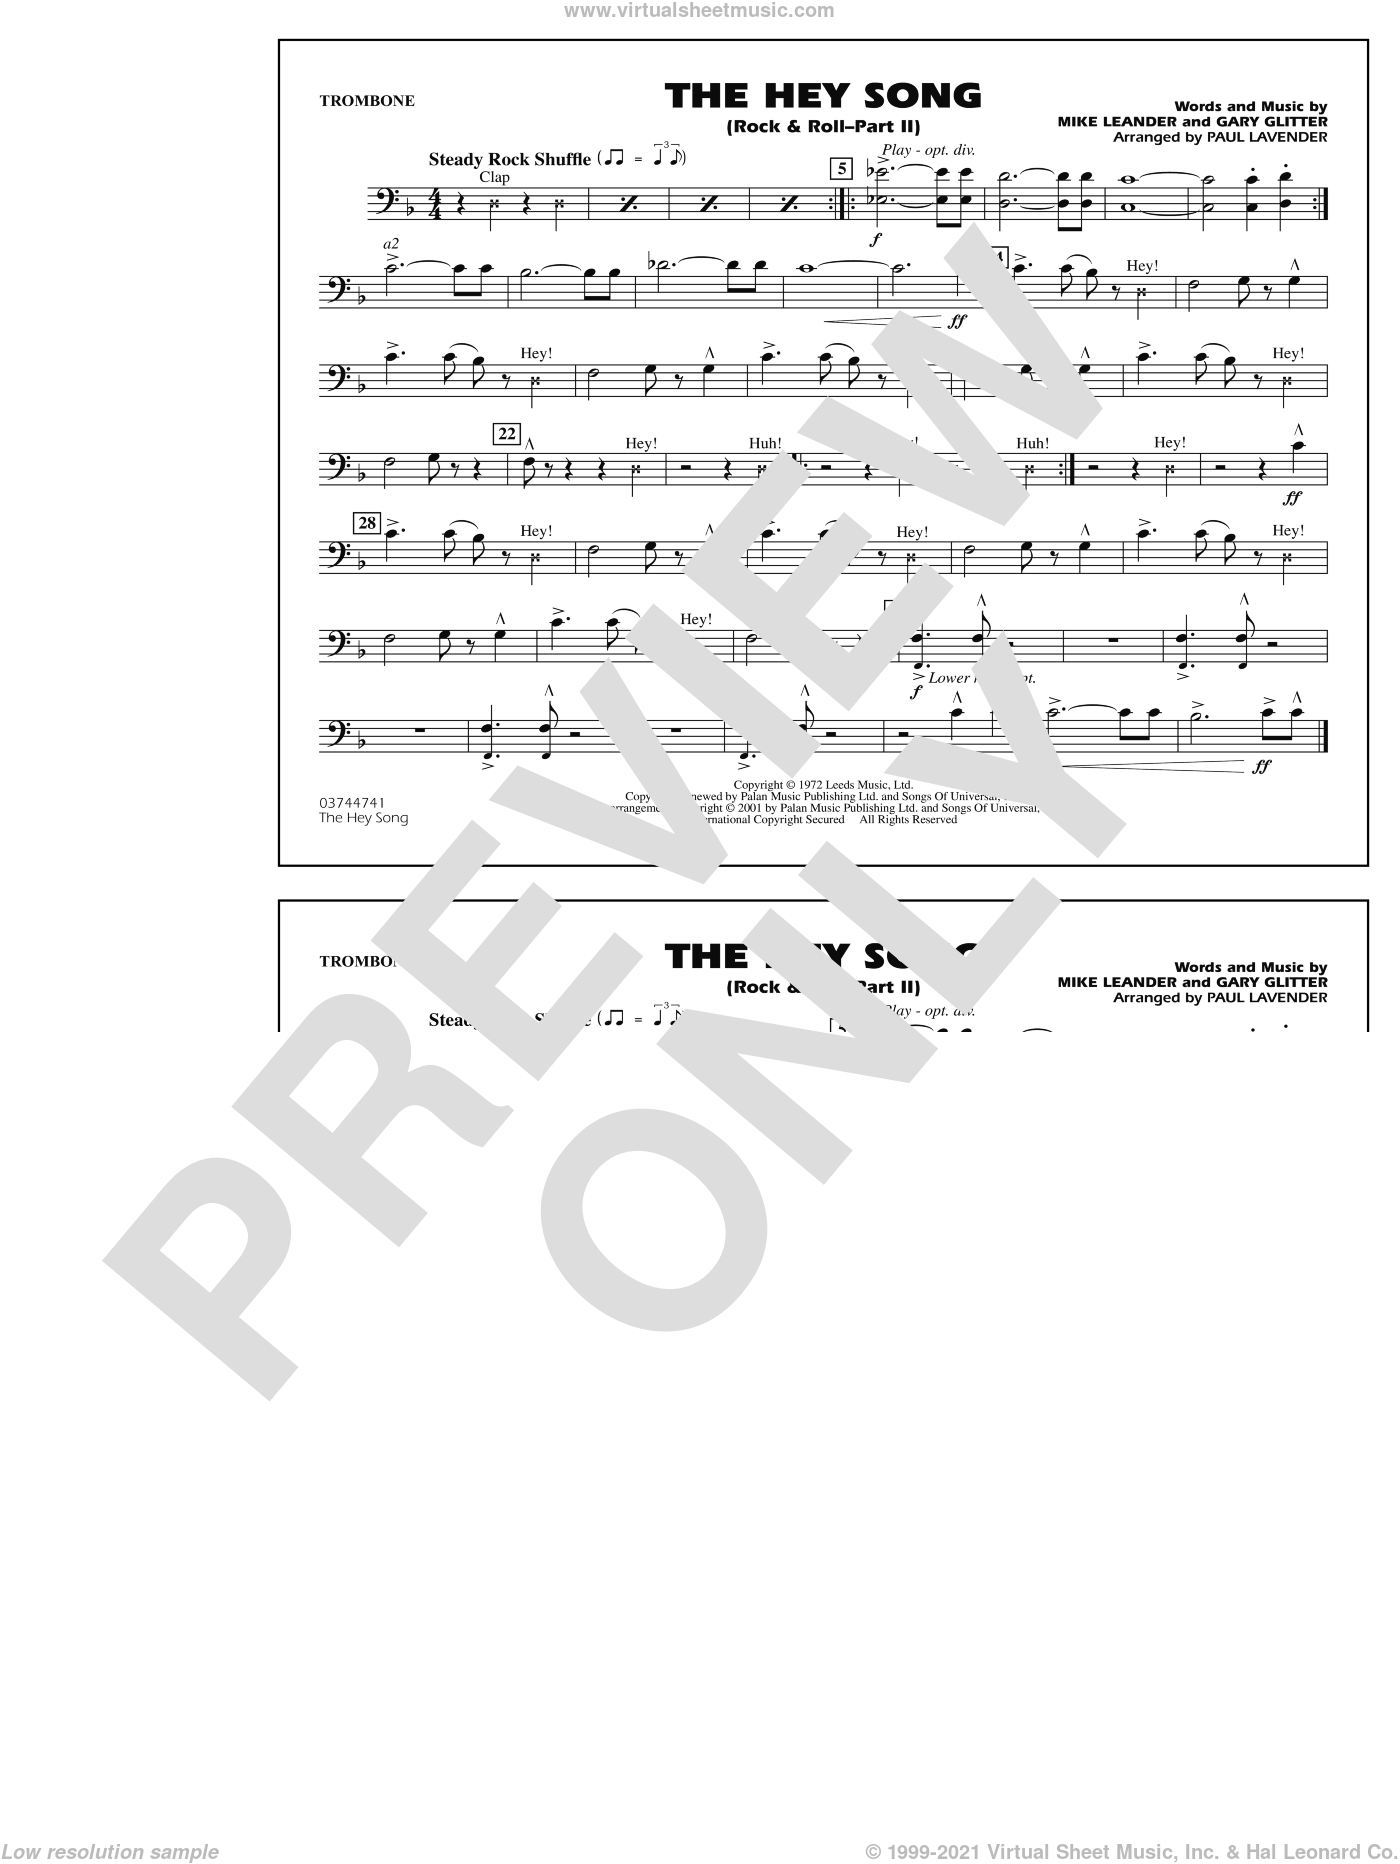 Rock and Roll, part ii (the hey song) sheet music for marching band (trombone) by Mike Leander